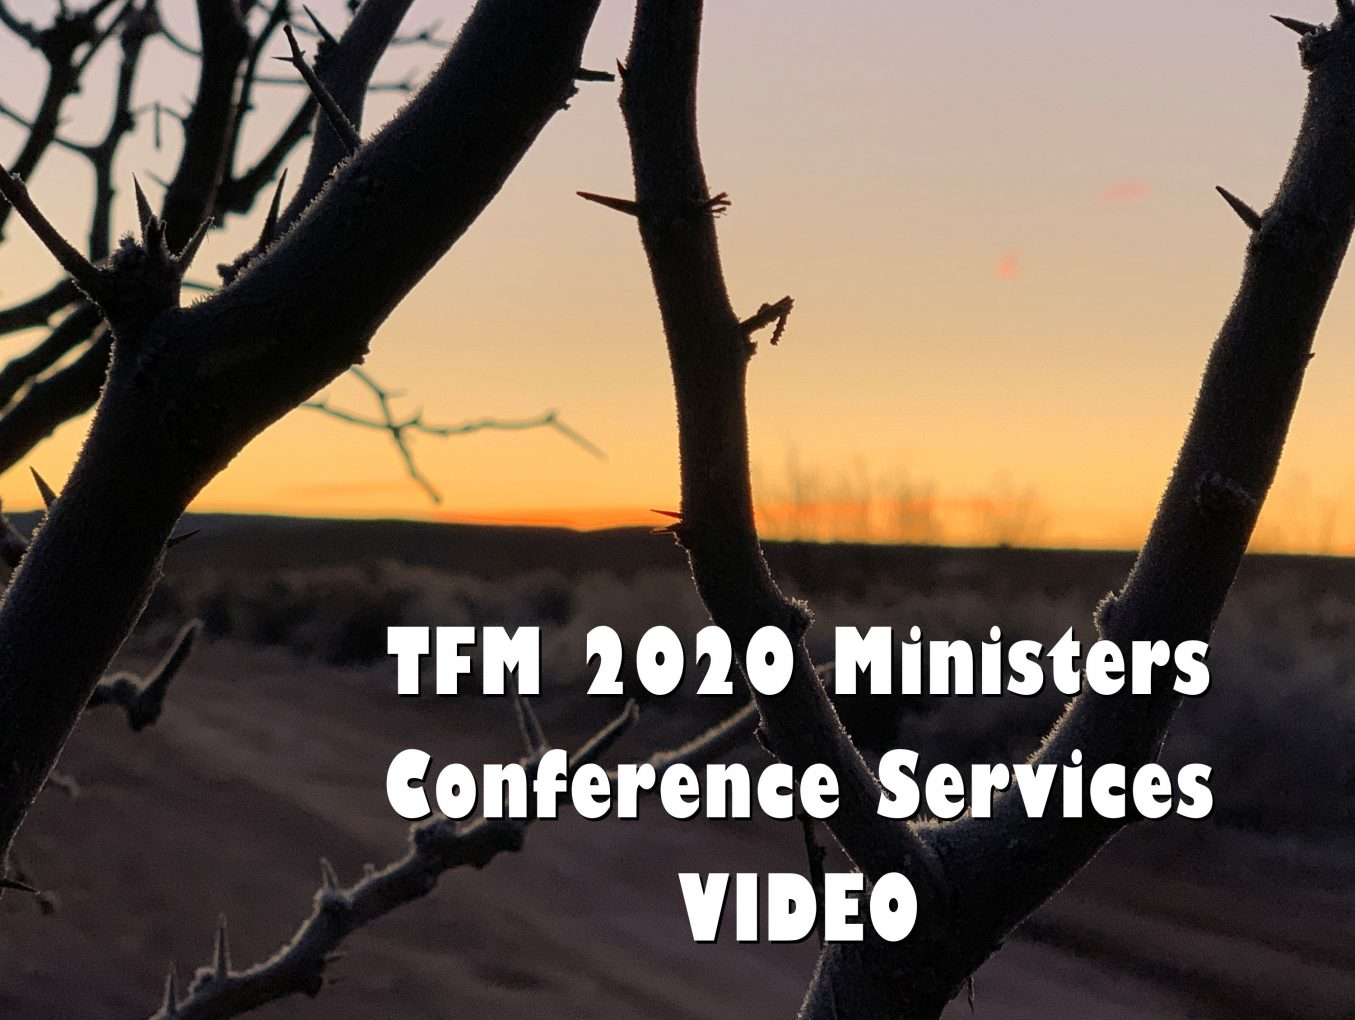 2020 Ministers Conference Services - VIDEOS